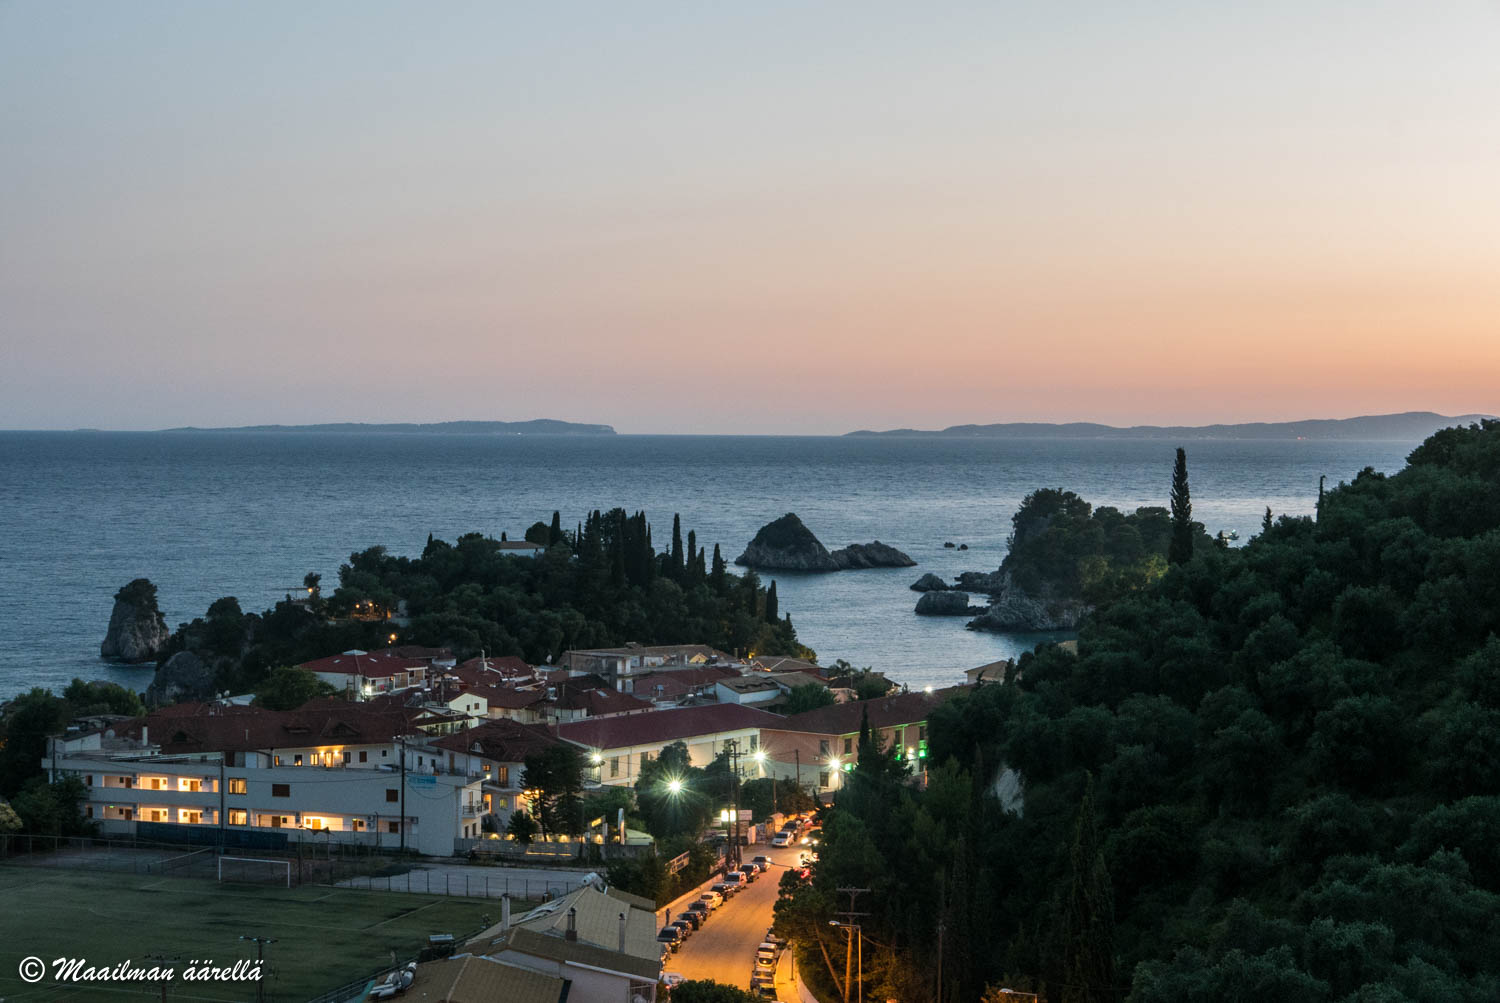 Enetiko resort Parga